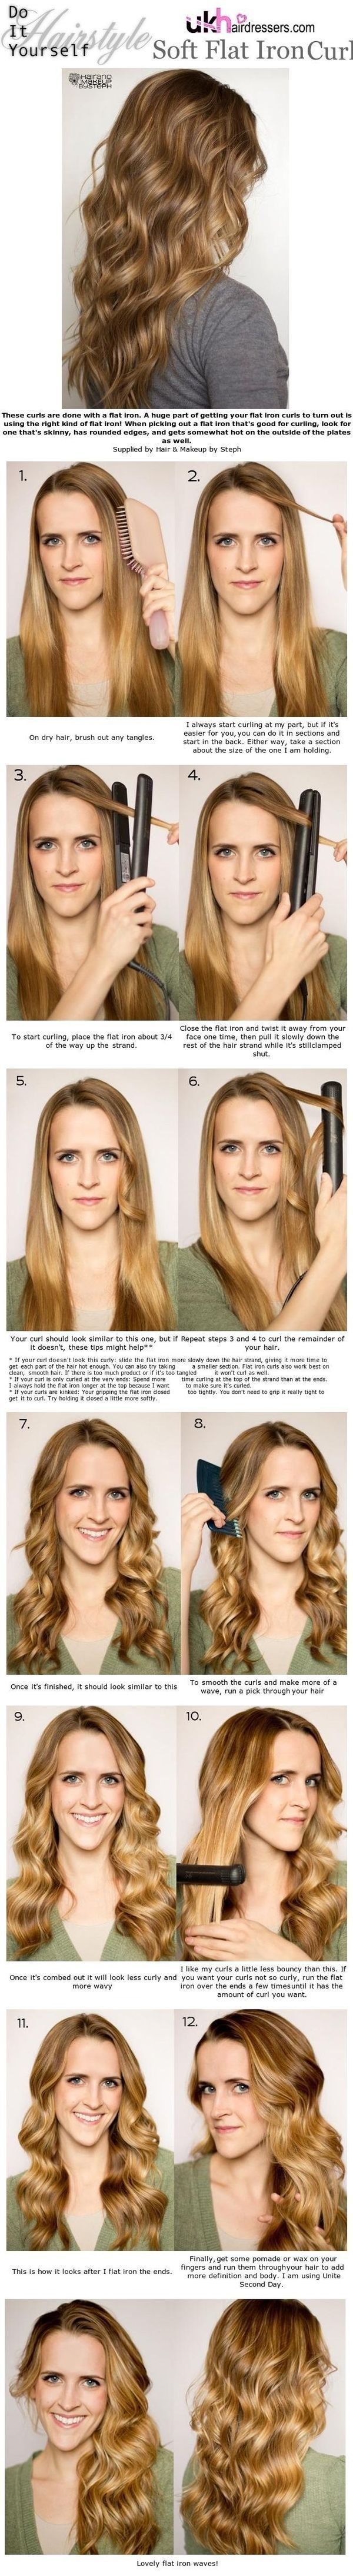 15 Hair Tricks Created by Hair Straightener